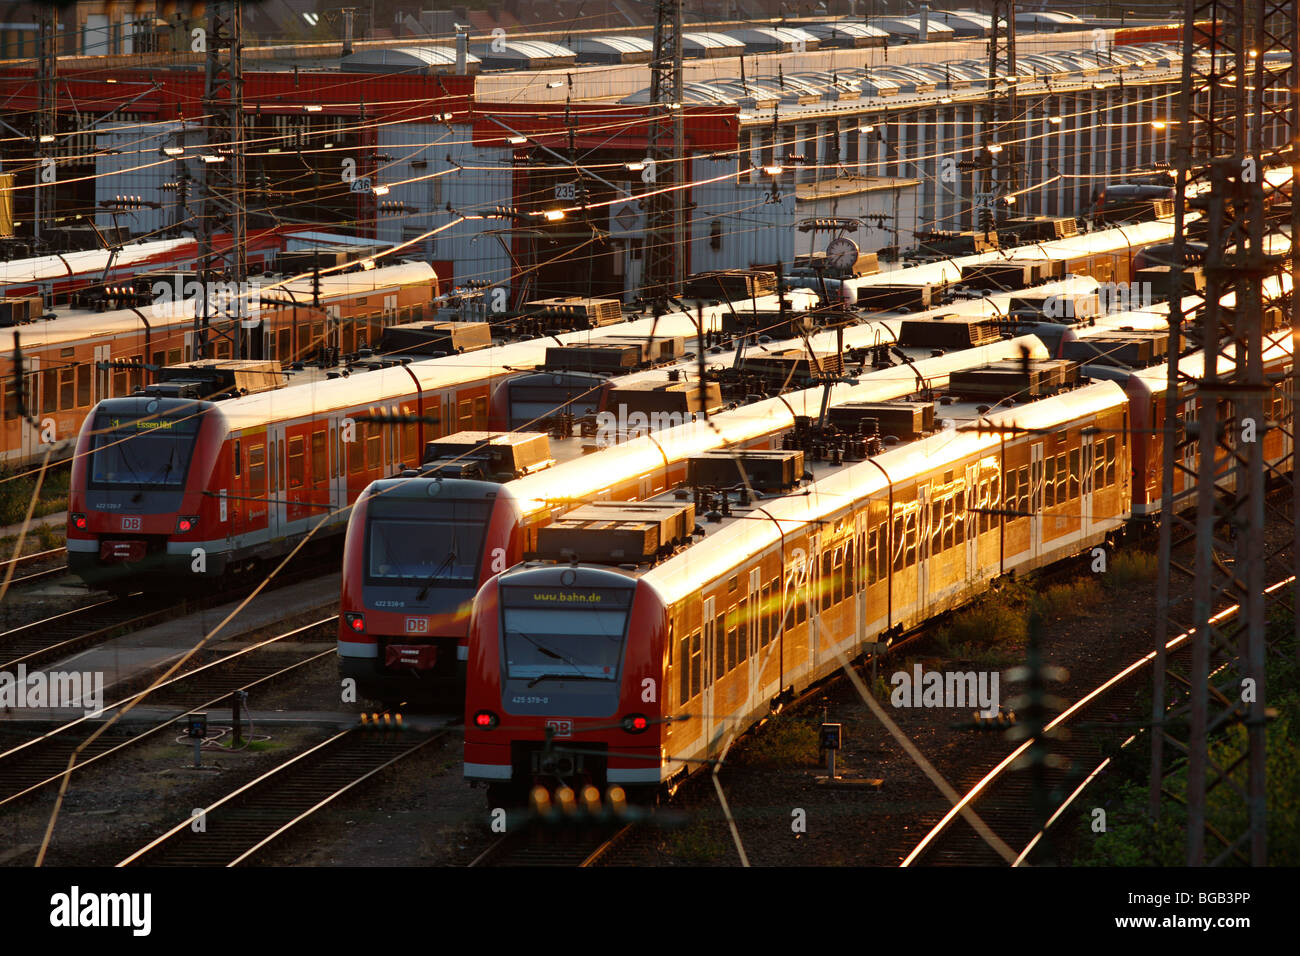 city trains on tracks in front of the central Station, Essen, Germany, Europe. - Stock Image